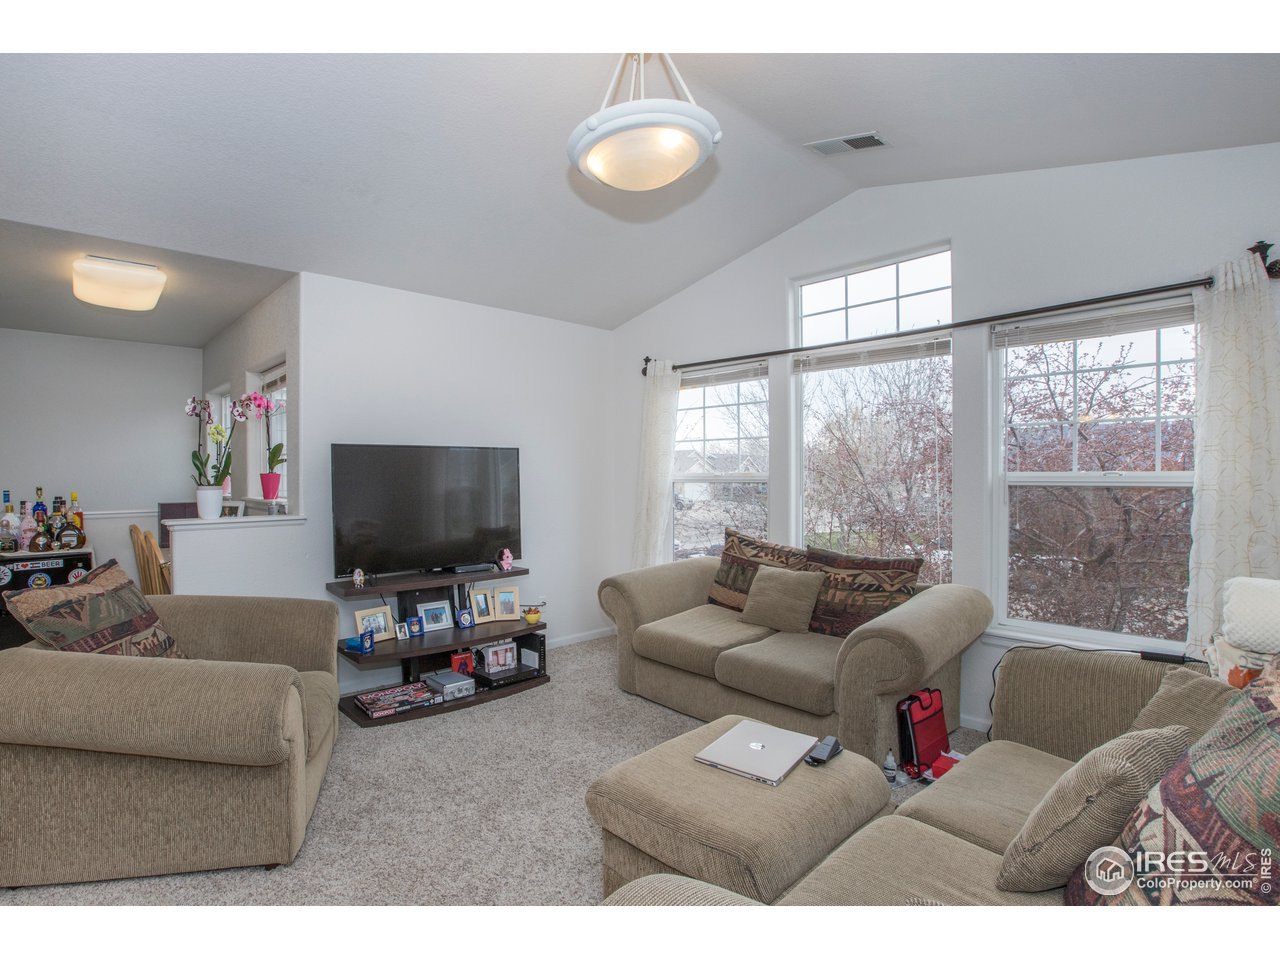 Vaulted ceilings add to the airy, open feel